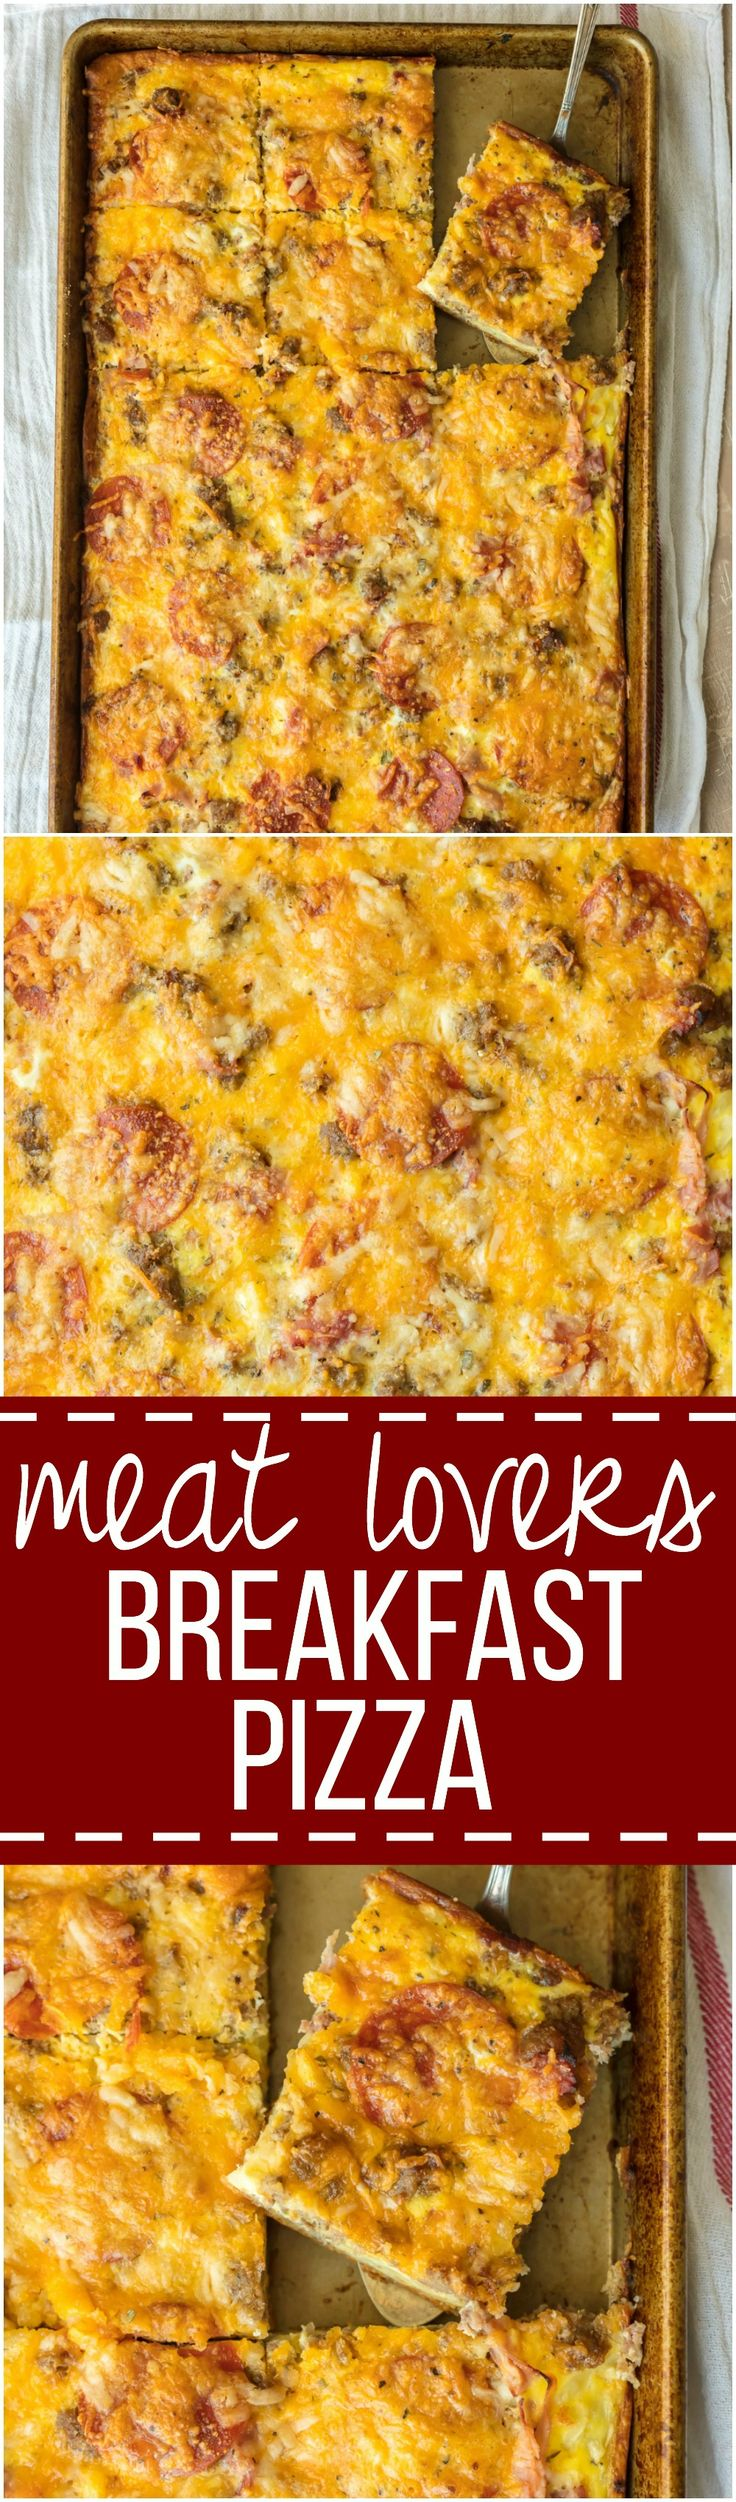 MEAT LOVERS BREAKFAST PIZZA - 375°F - Loaded with pepperoni, bacon, sausage, hamburger, egg, hash browns, and cheese! BEST SHEET PAN BREAKFAST PIZZA EVER!